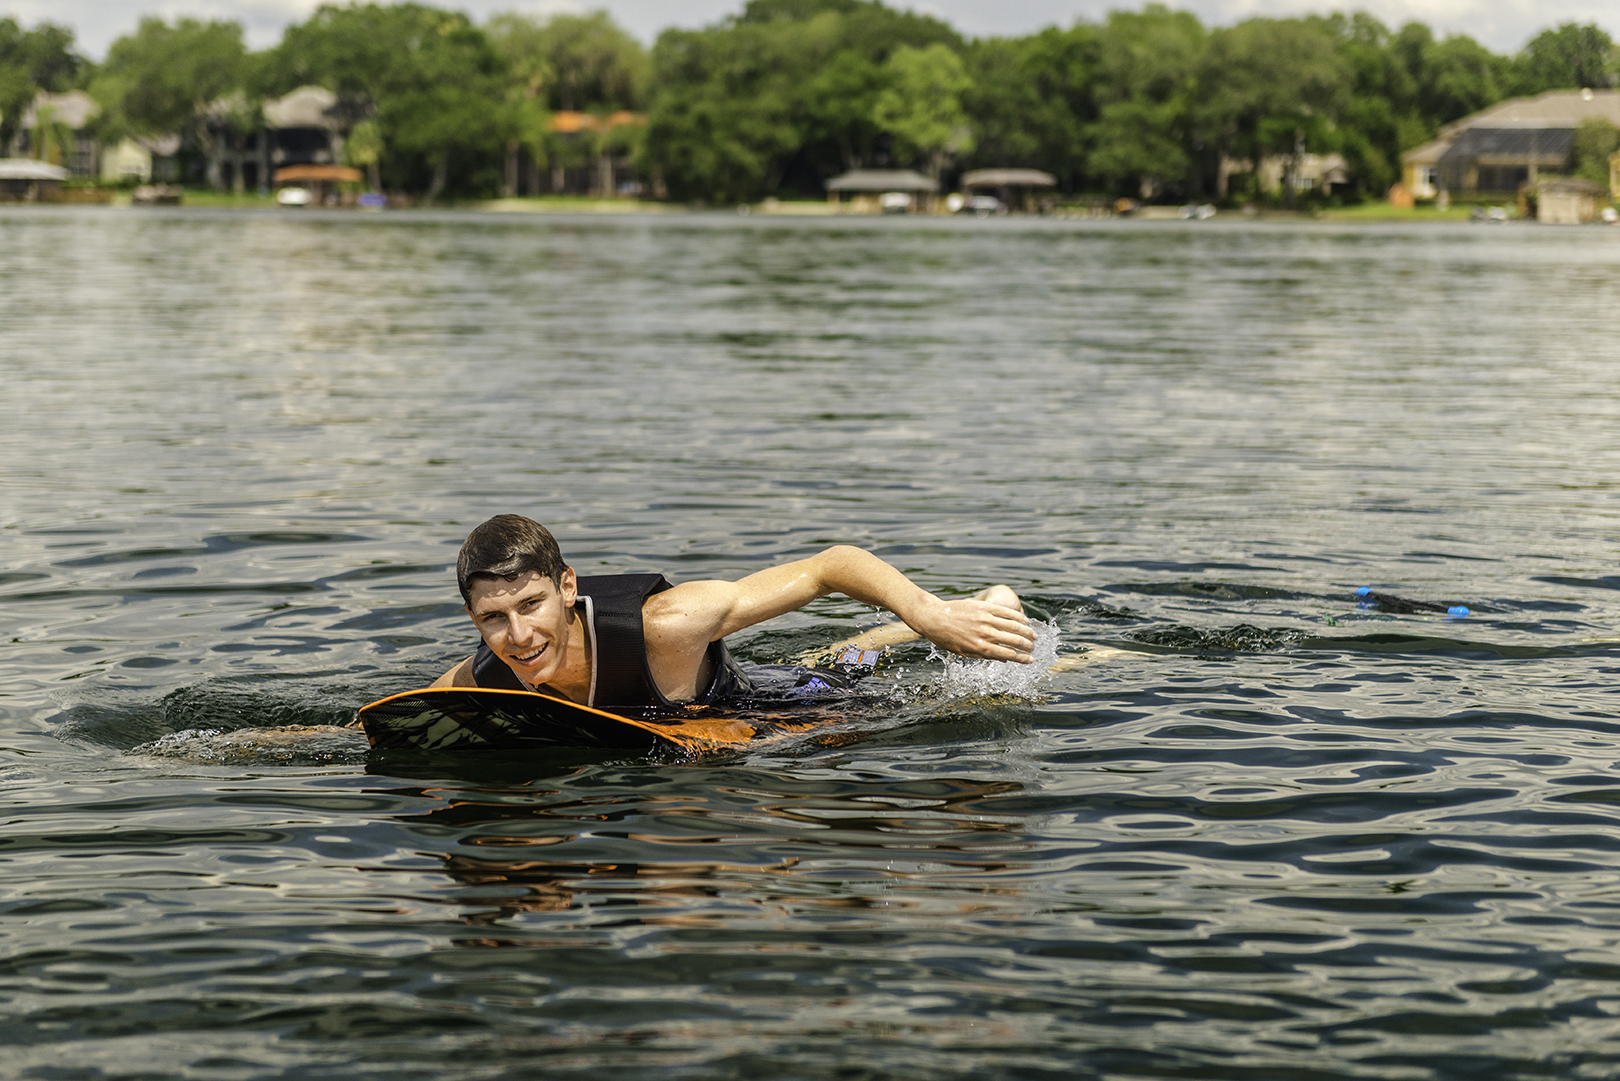 Kneeboarding: How to ride a Kneeboard